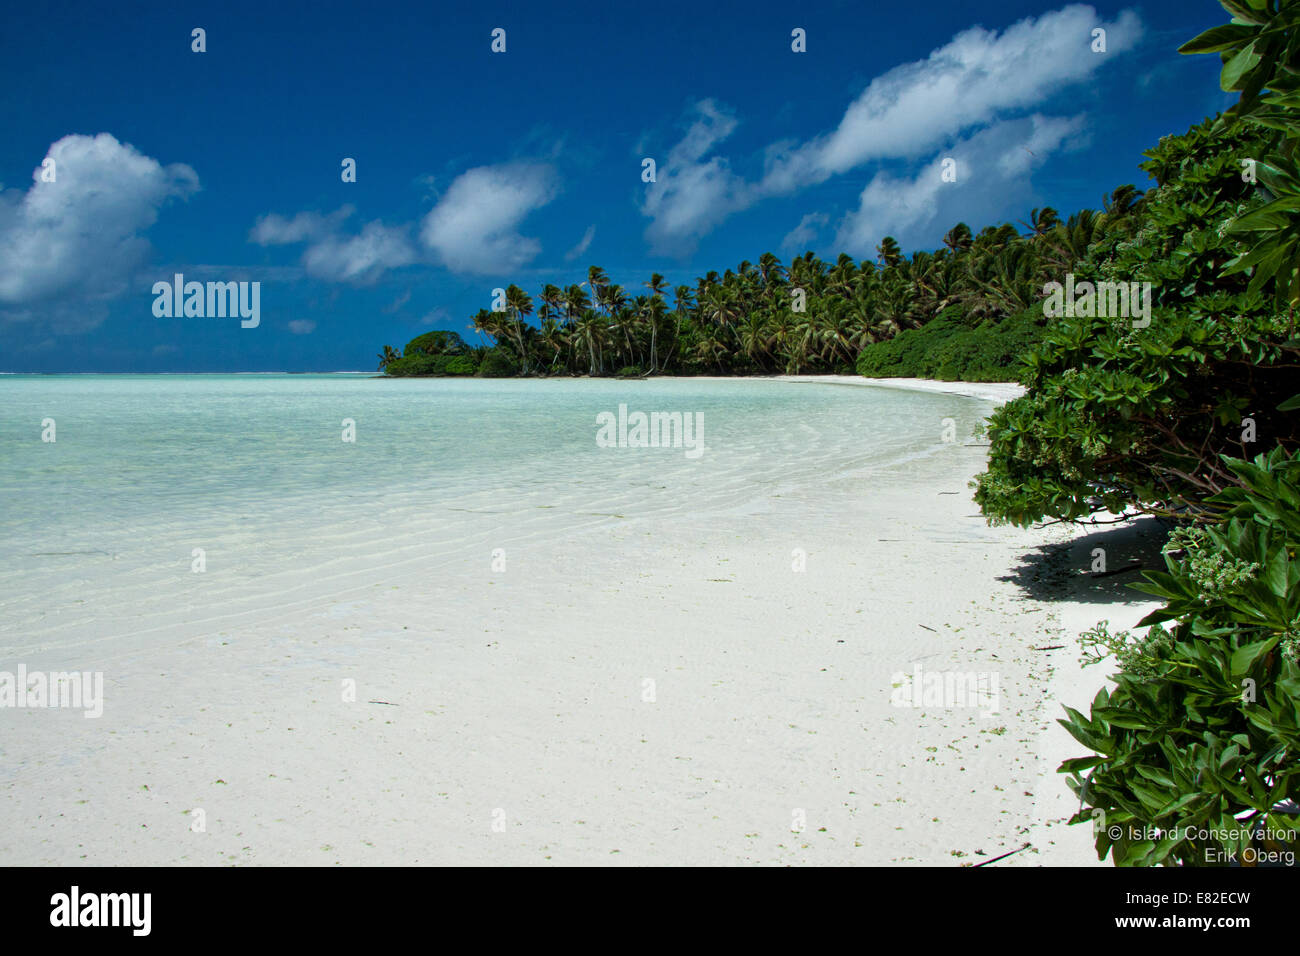 Palm fringed white sand beach along a lagoon on Palmyra Atoll an unoccupied island in the equatorial Northern Pacific - Stock Image